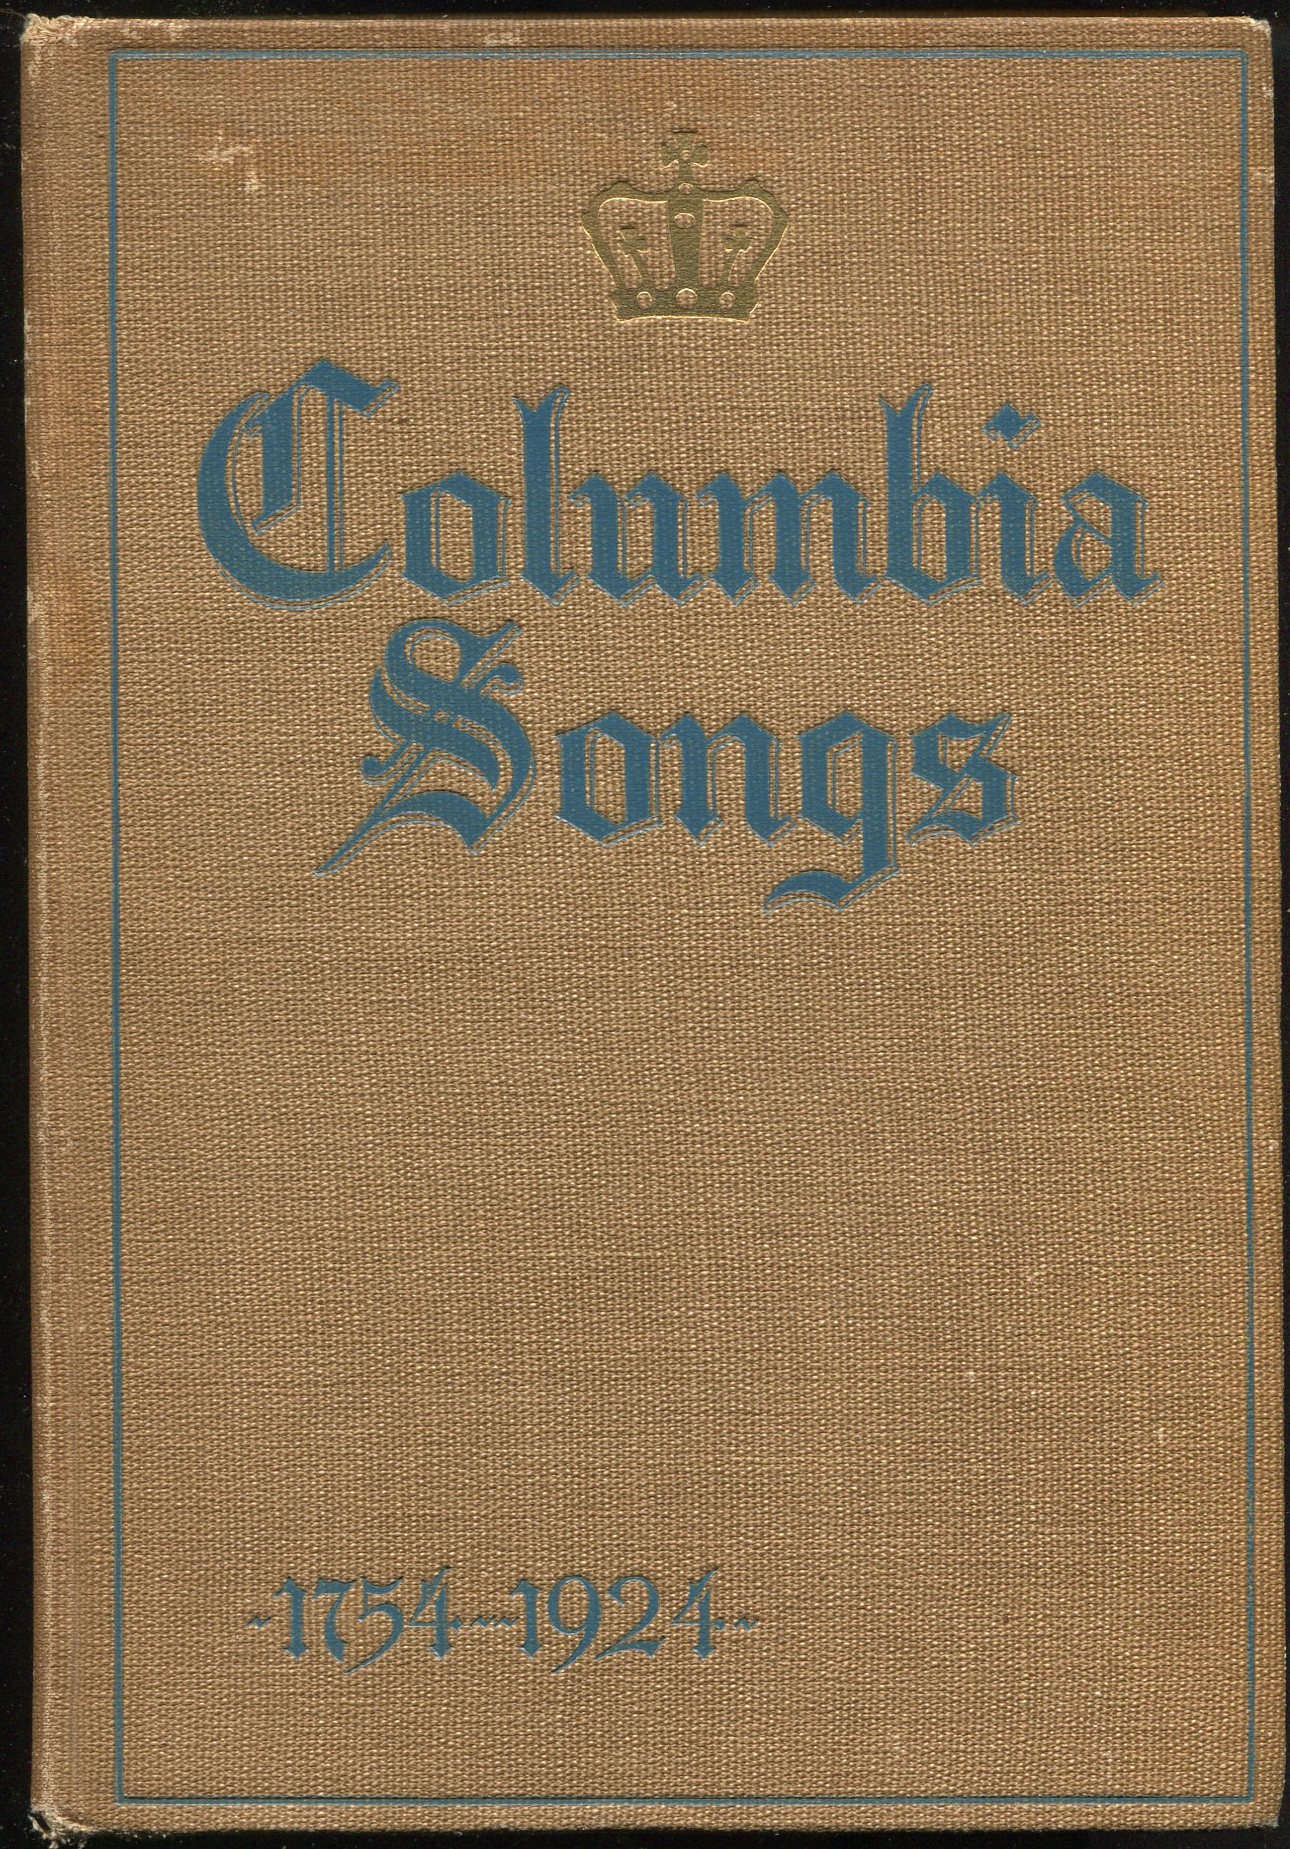 Columbia Songs. Compiled by a Committee Appointed by the Alumni Council.